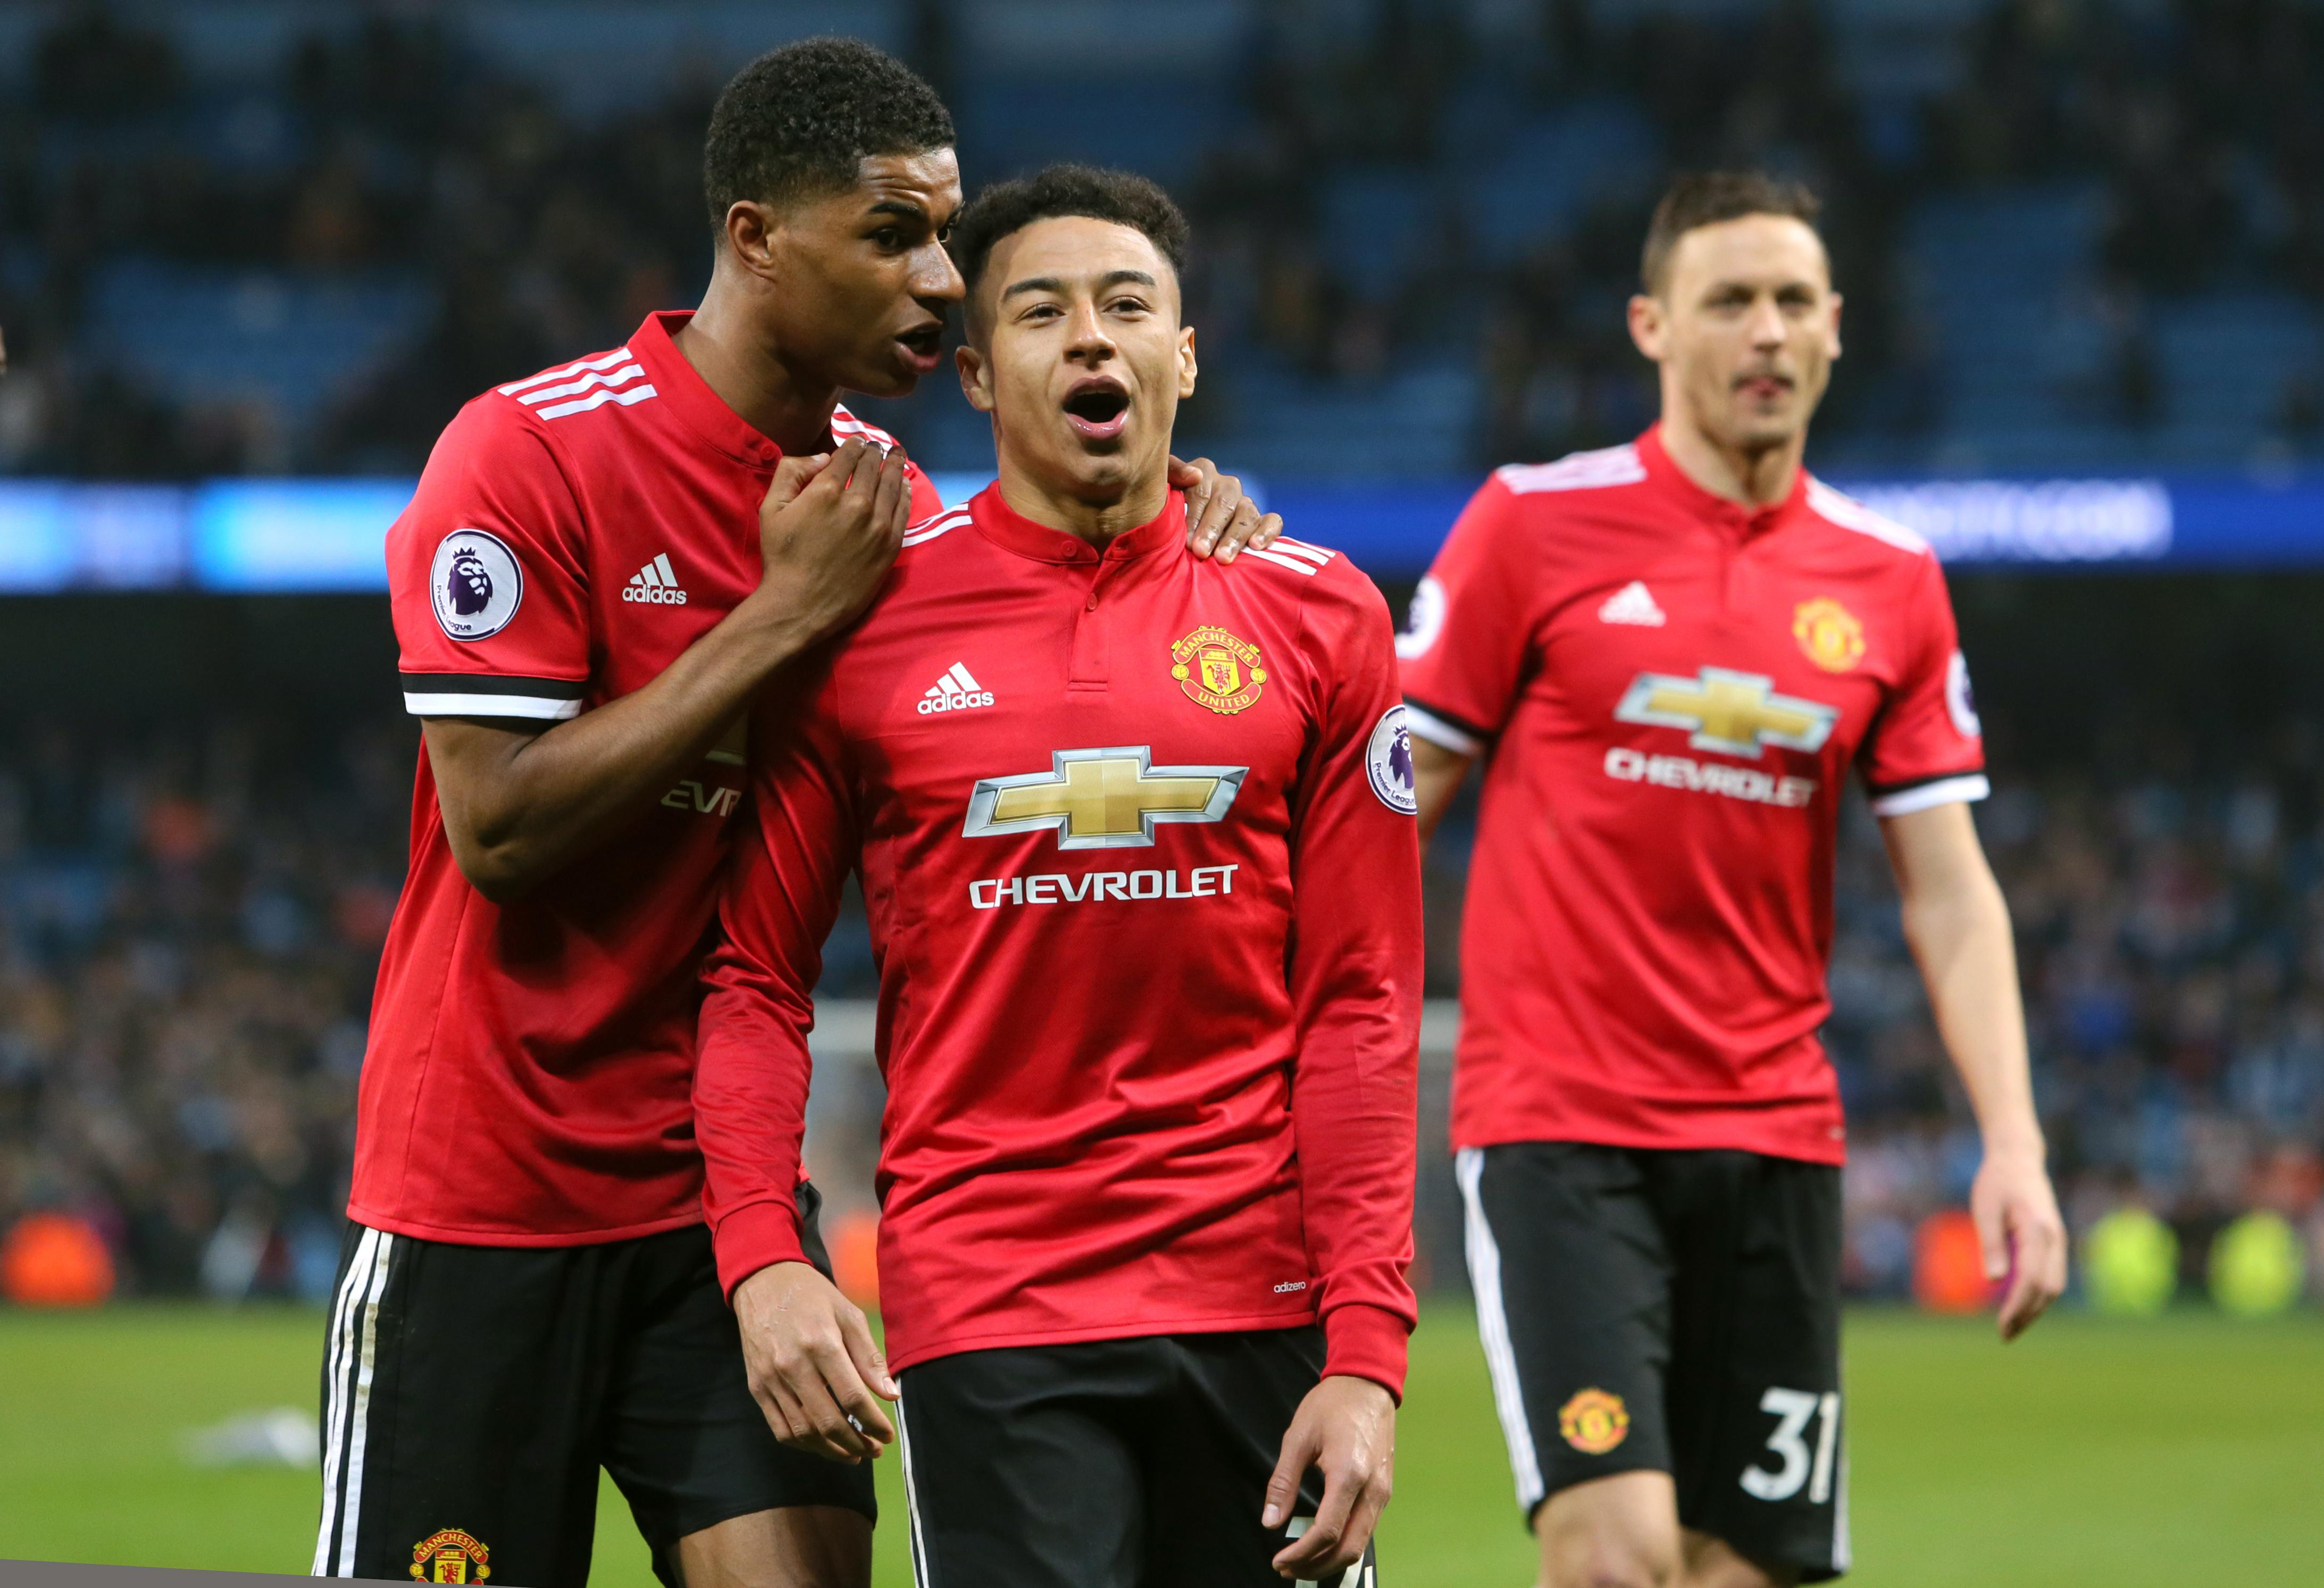 Rashford helped United beat City to rain on their title parade but only played eight minutes